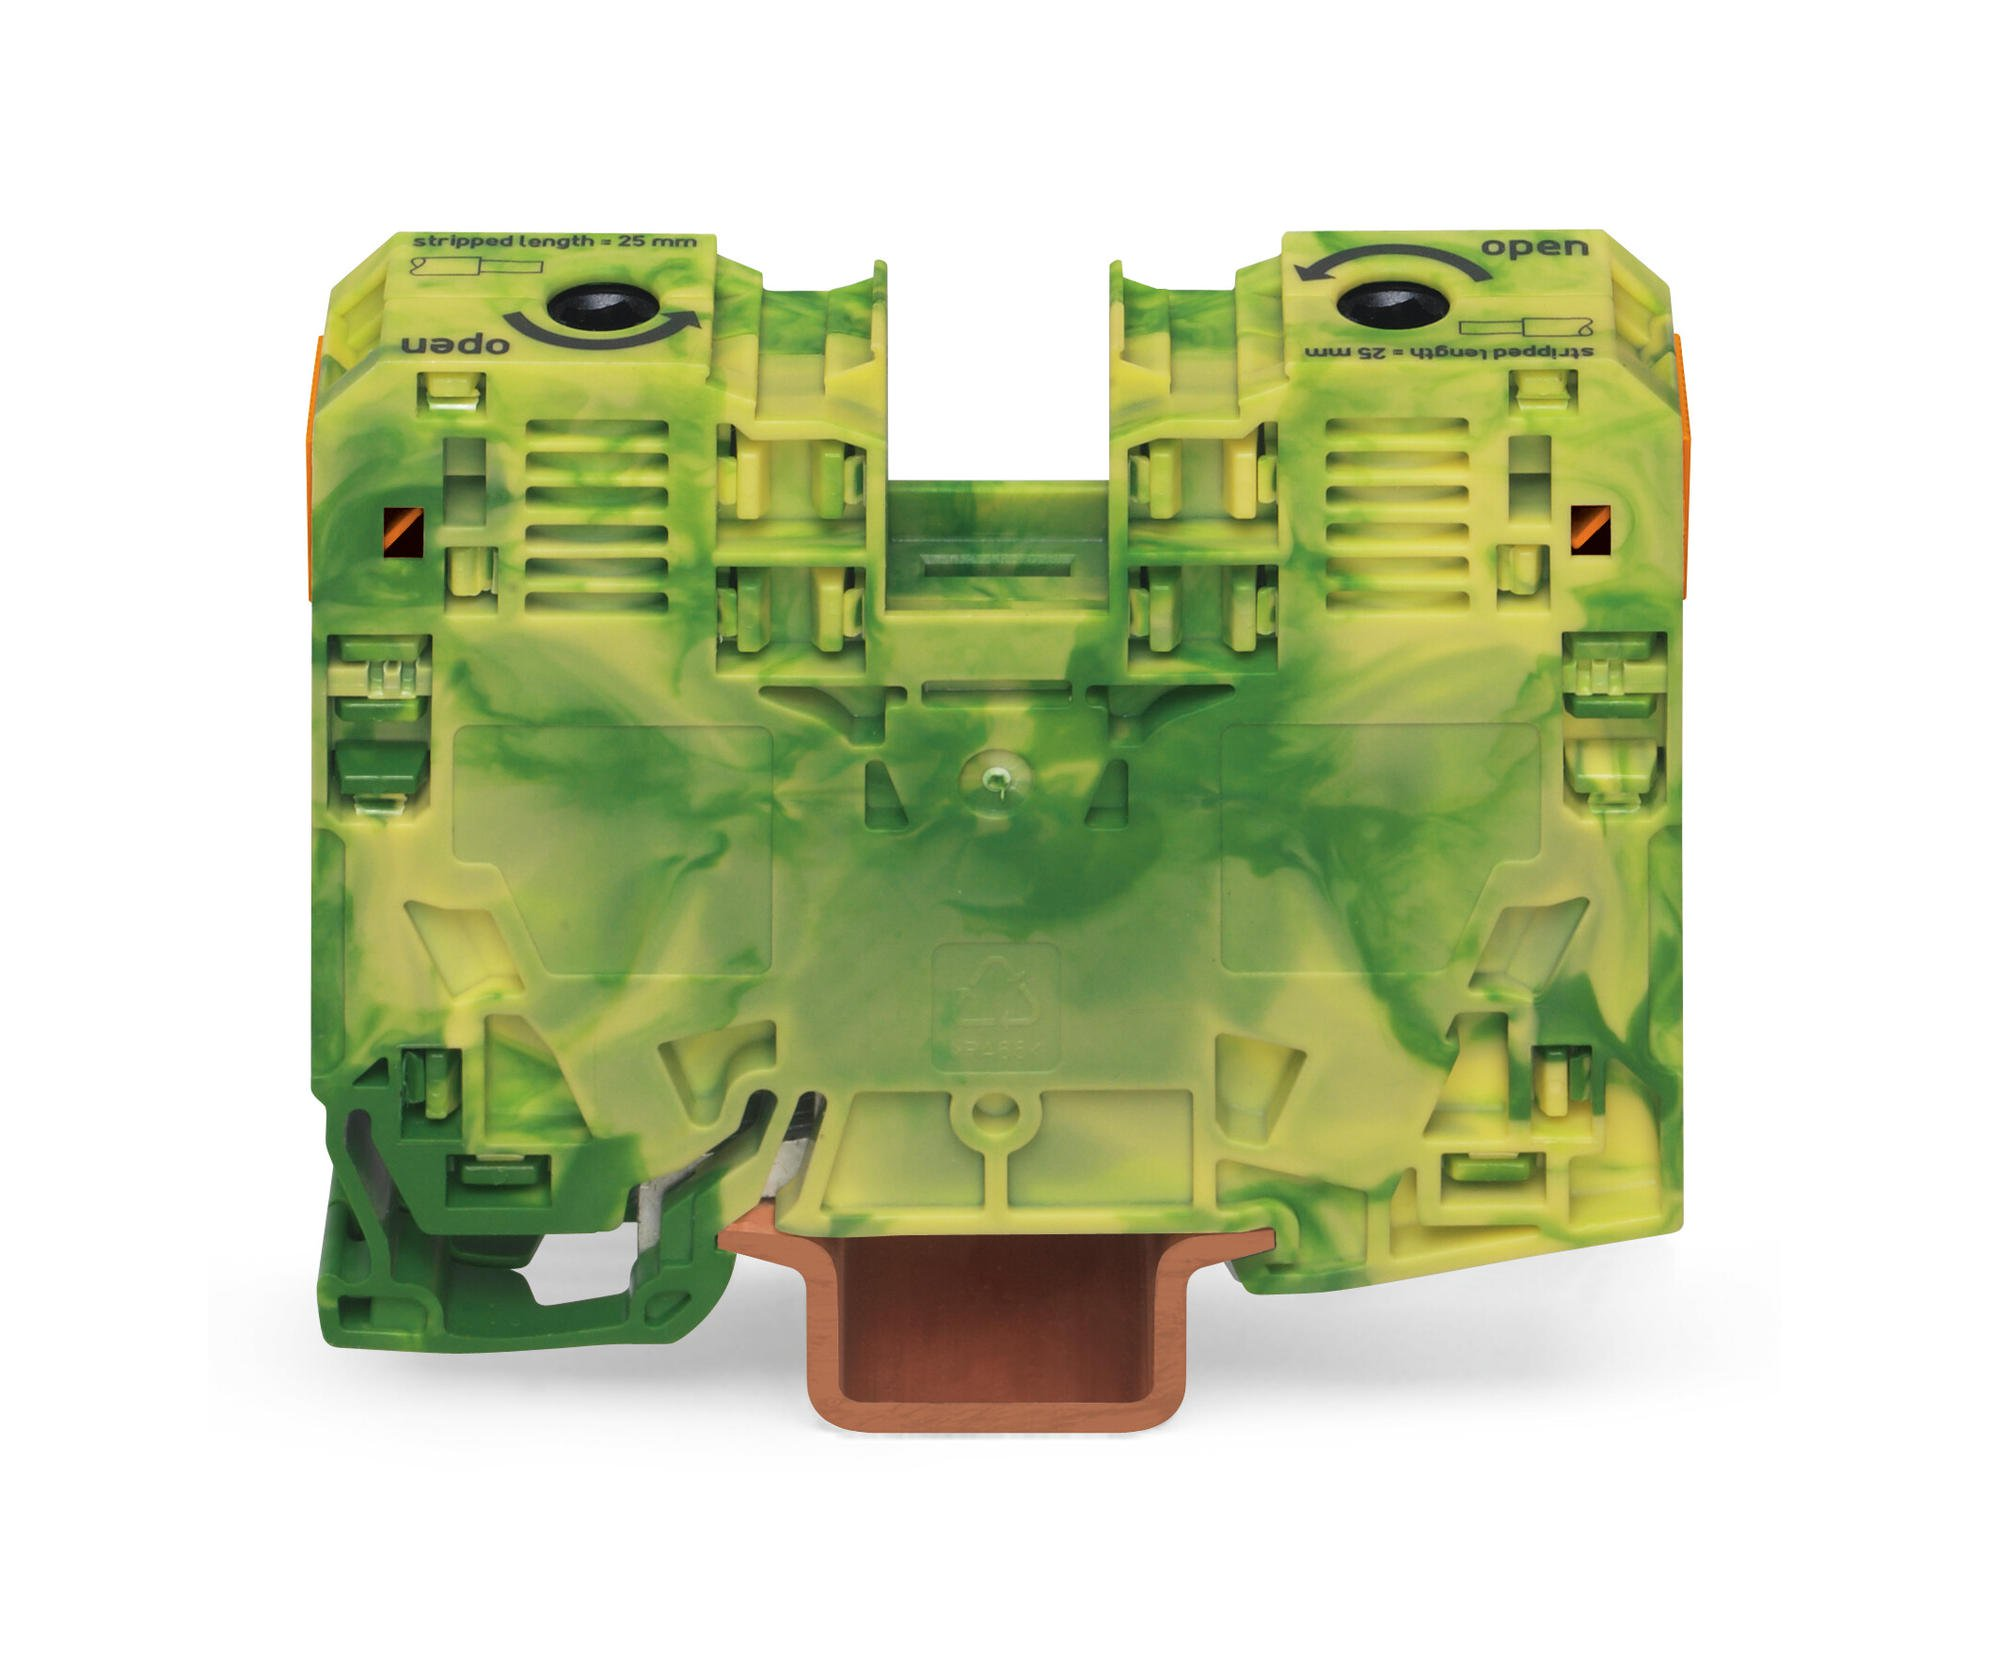 Wago 285 Series Power Cage Clamp Terminal Block